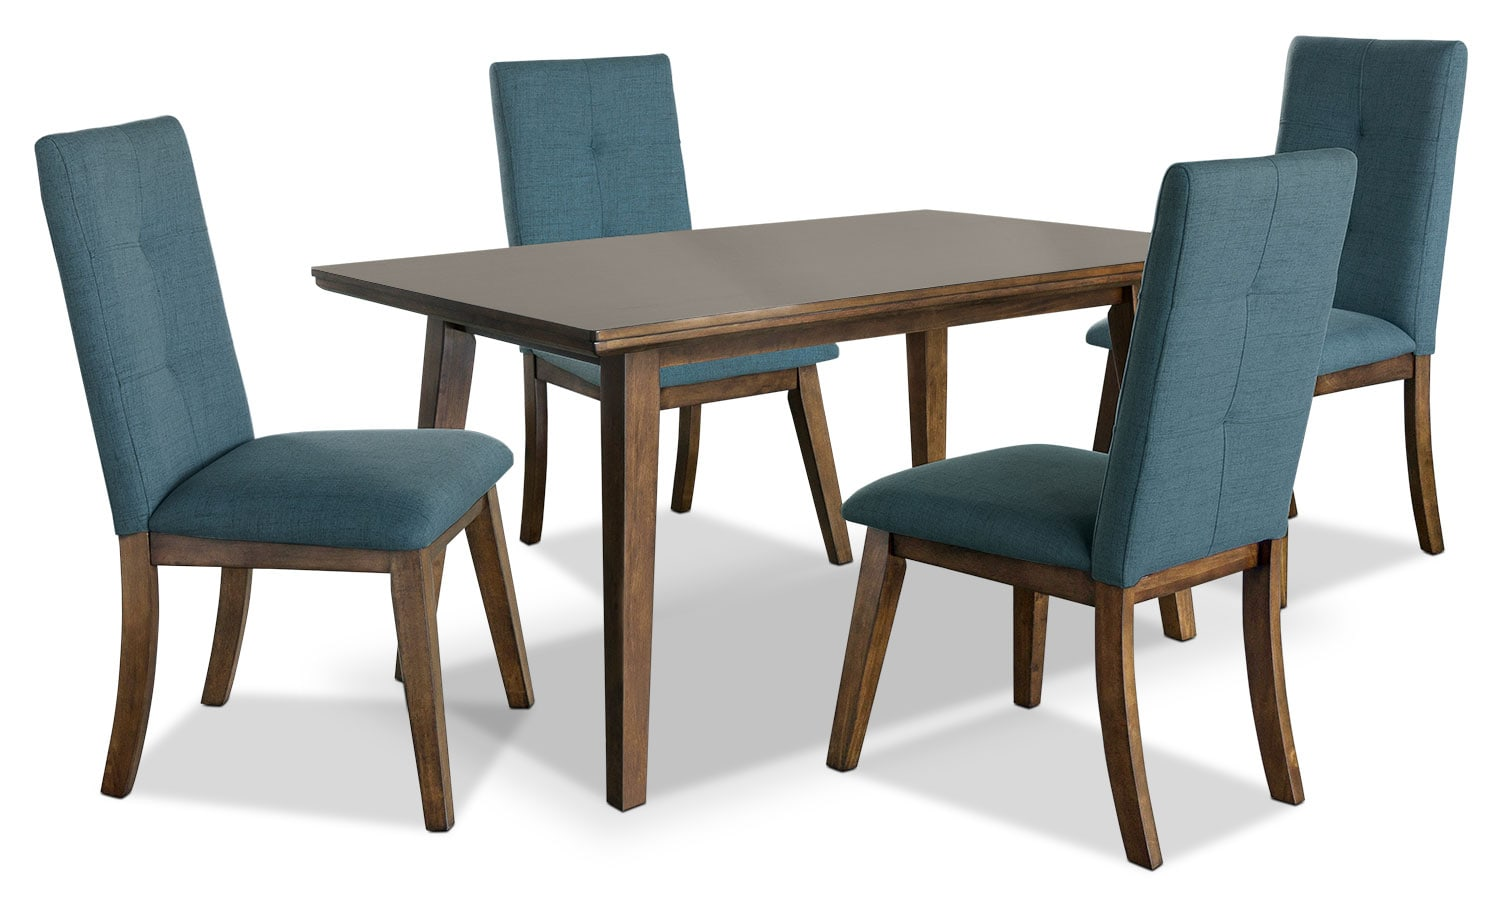 Aqua Dining Chairs Chelsea 5 Piece Dining Package With Aqua Chairs The Brick